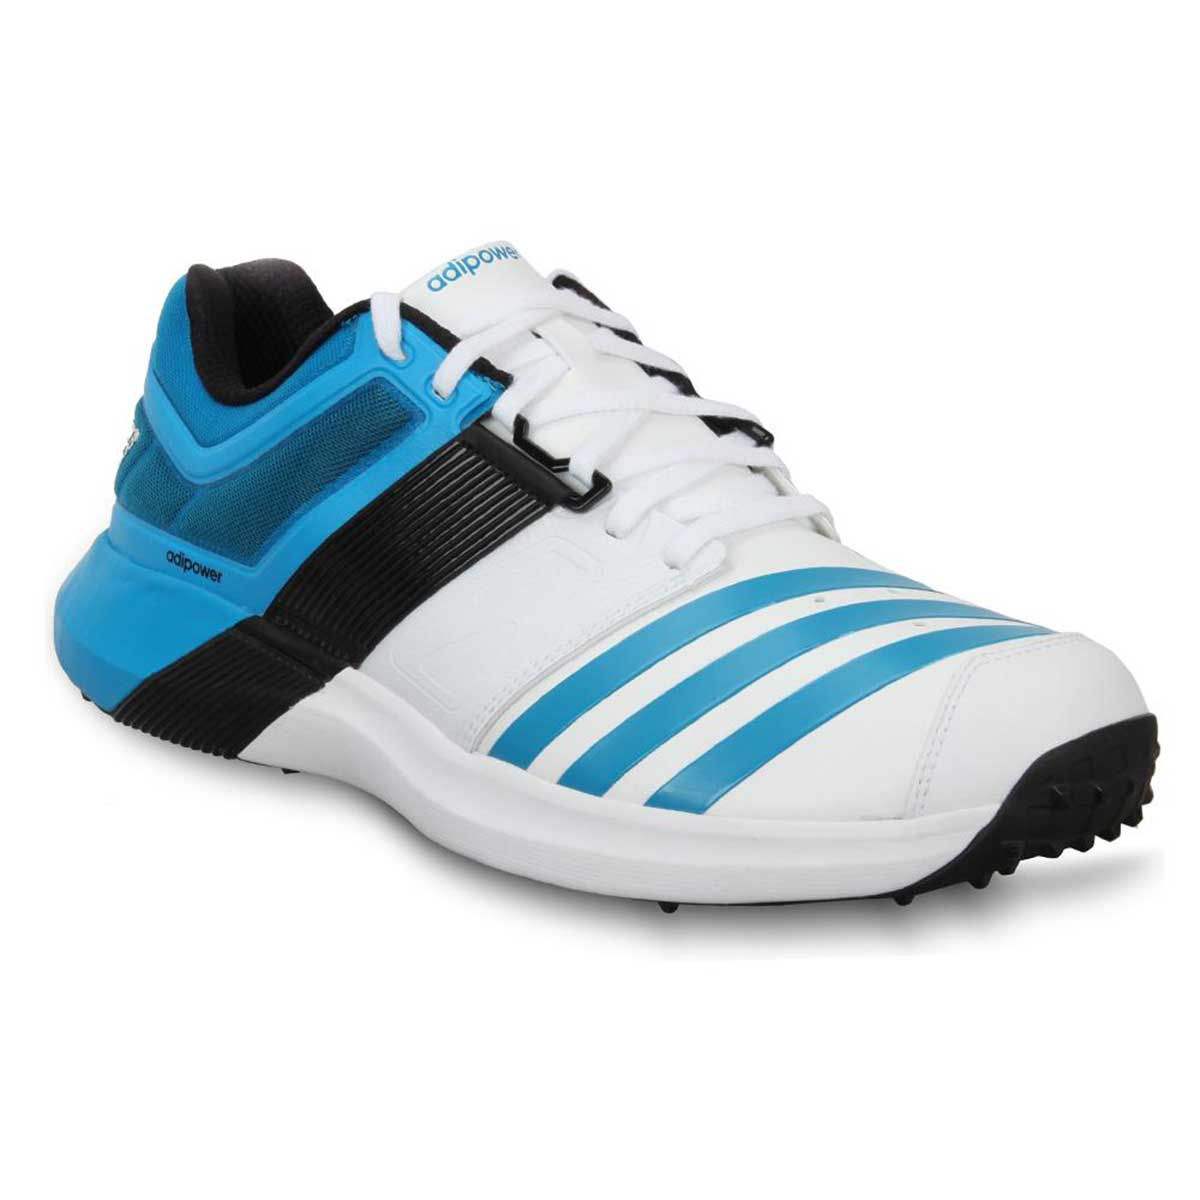 Cricket Shoes, Cricket, Sports, Buy, Adidas, Adidas AdiPower Vector Cricket  Shoes